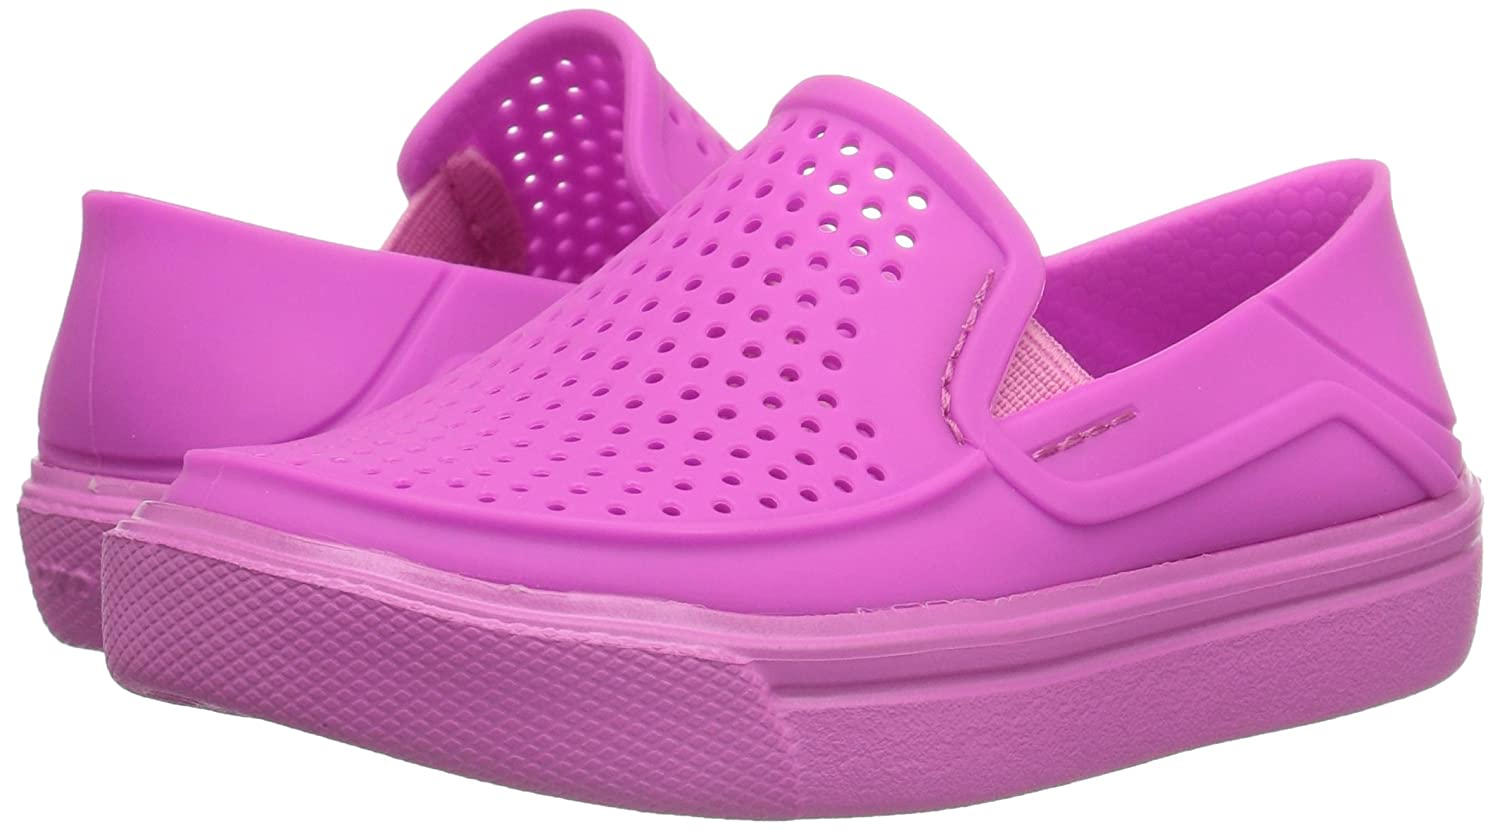 Easy On Comfort Athletic Shoe for Toddlers Easy On Comfort Athletic Shoe for Toddlers Boys Crocs Kids Citilane Roka Slip On Sneaker Lightweight Crocs Kids/' Citilane Roka Slip On Sneaker Girls